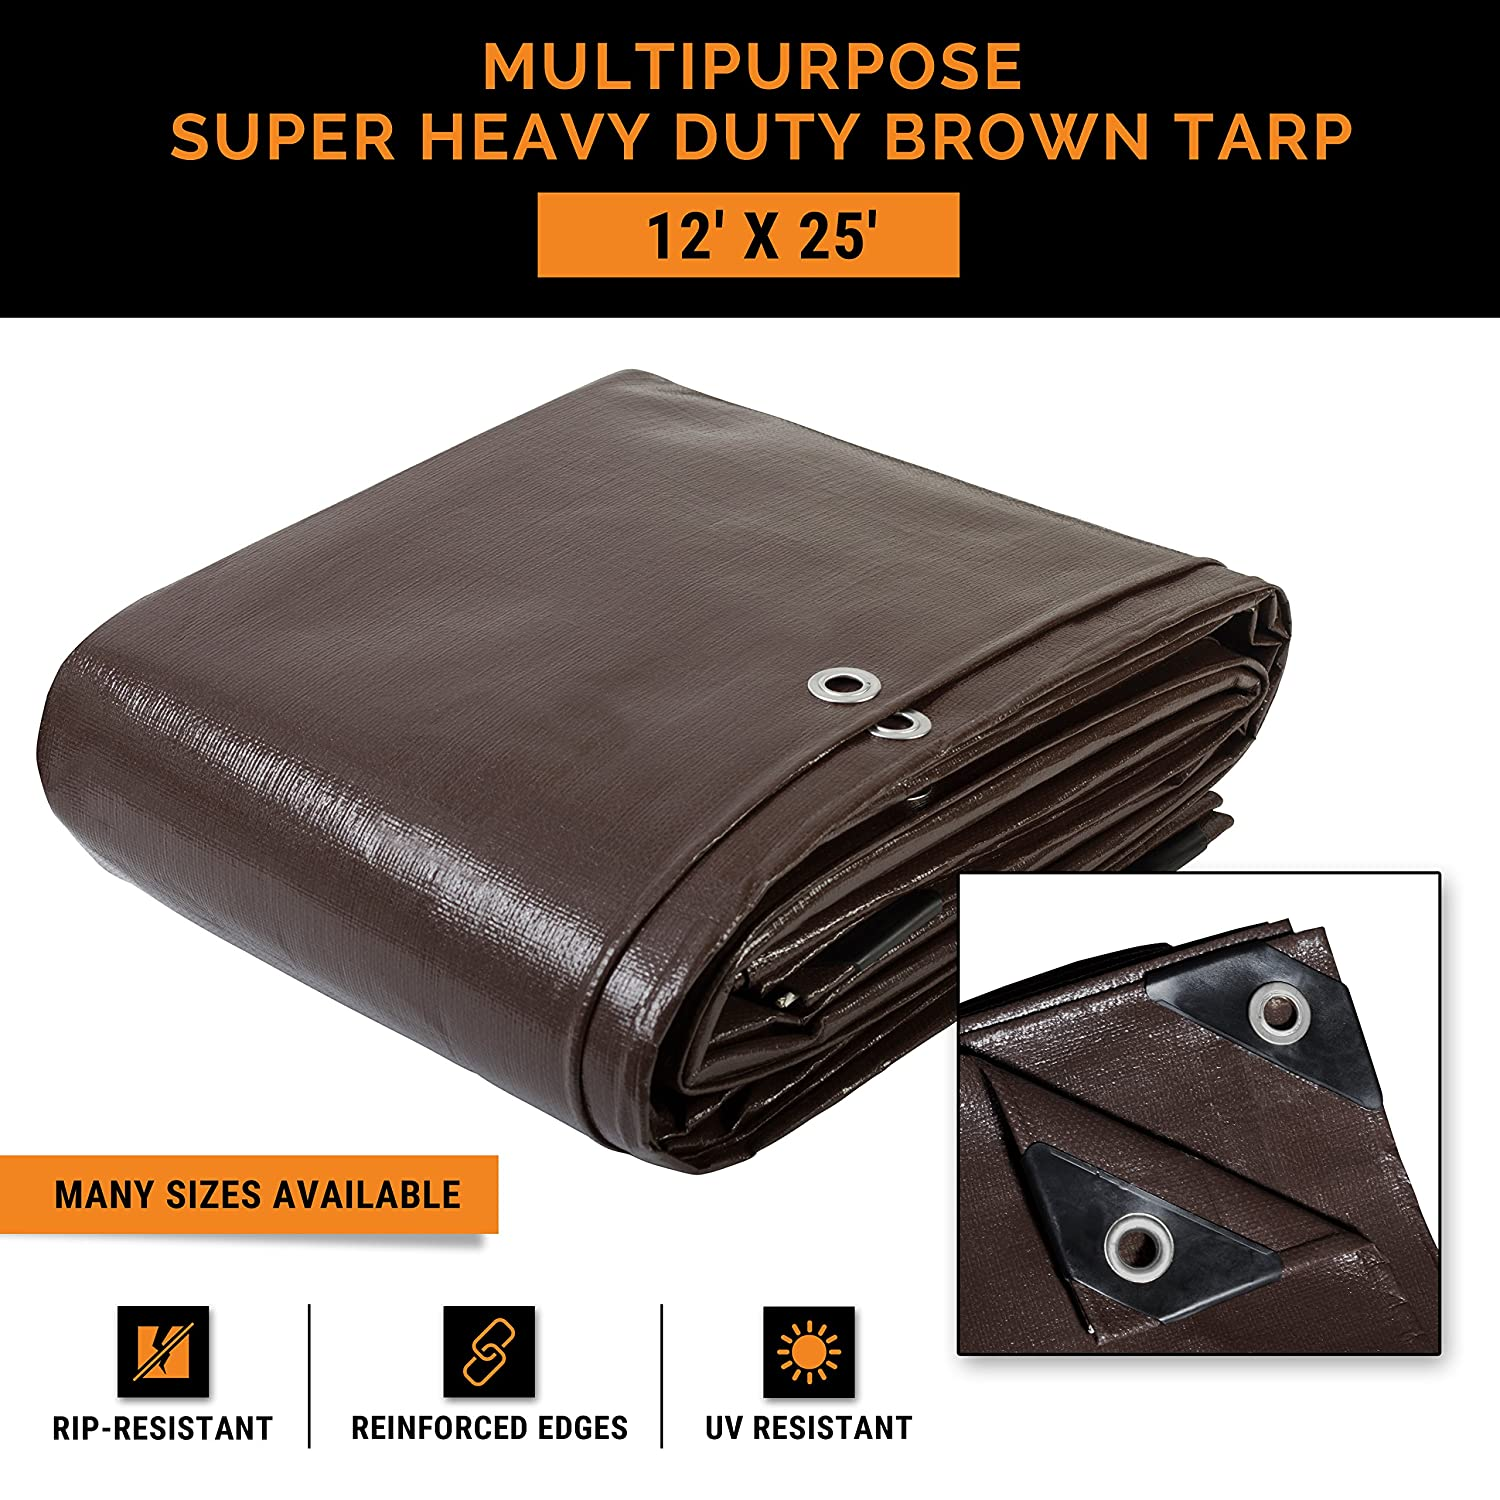 by Xpose Safety Thick Waterproof Rot UV Resistant 10 x 12 Super Heavy Duty 16 Mil Brown Poly Tarp Cover Rip and Tear Proof Tarpaulin with Grommets and Reinforced Edges